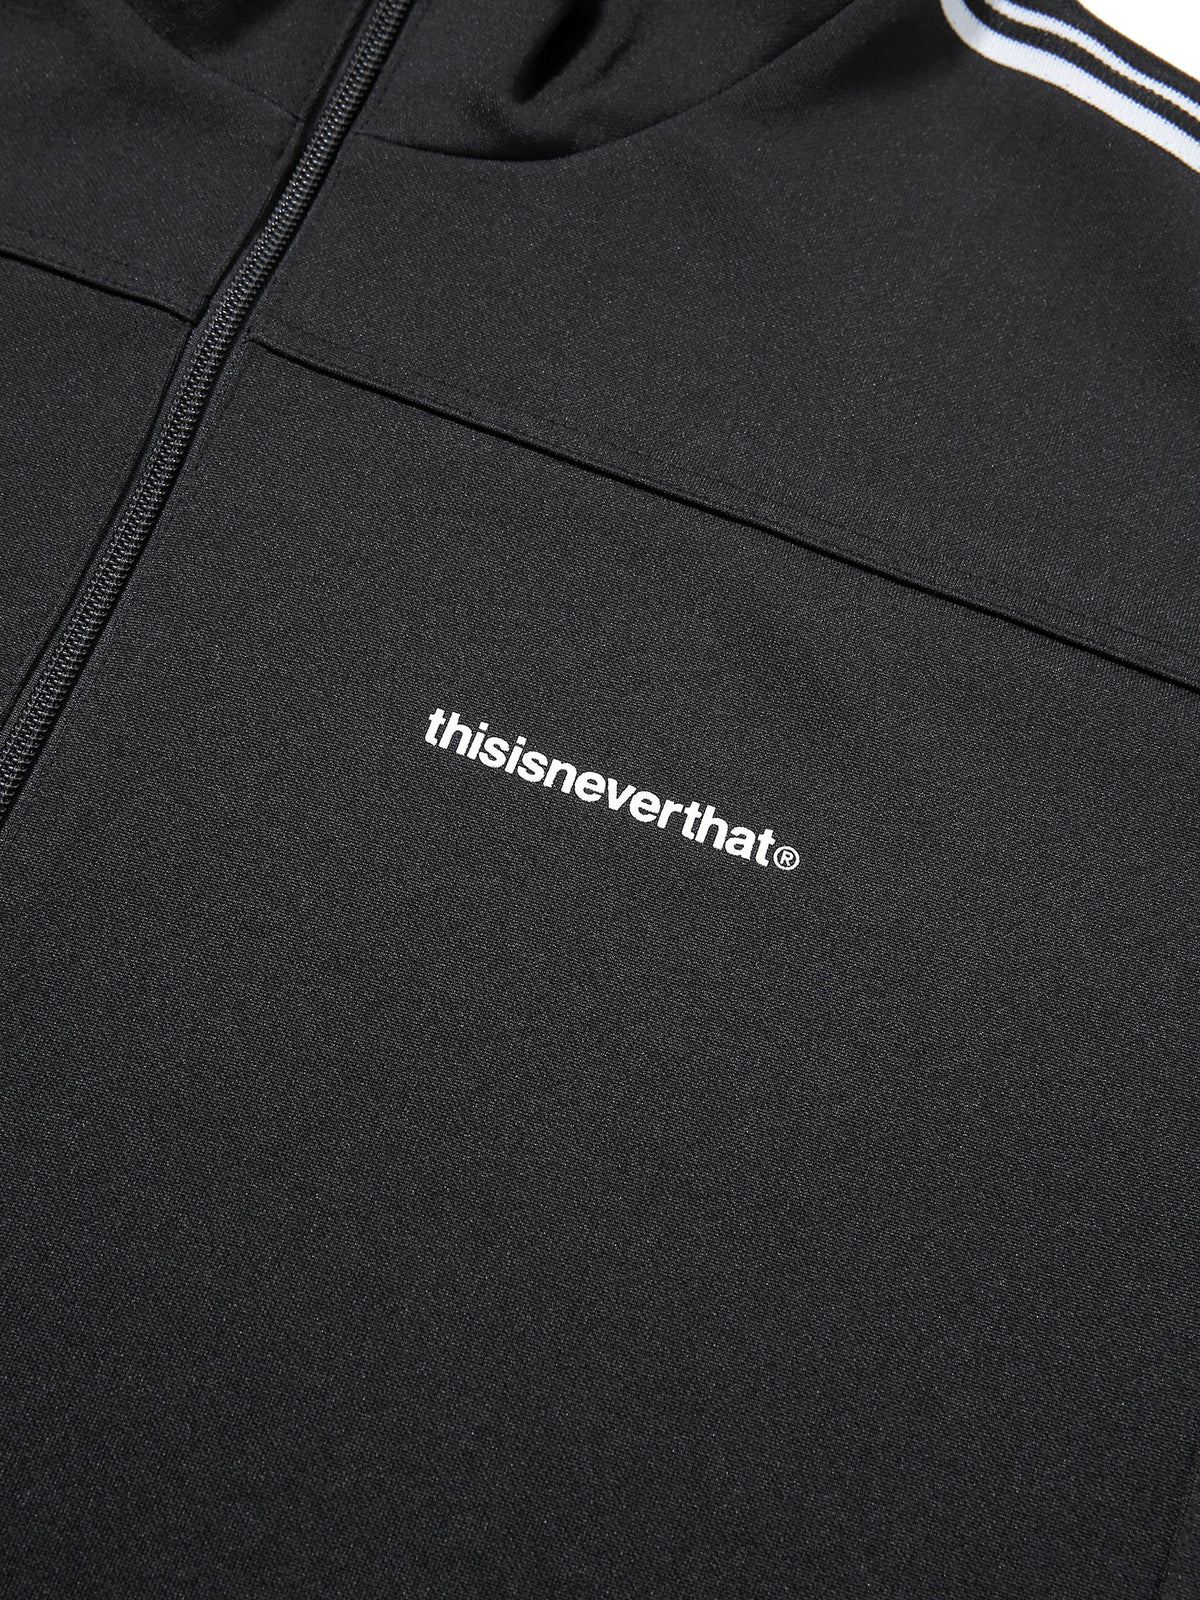 Track Jacket - thisisneverthat